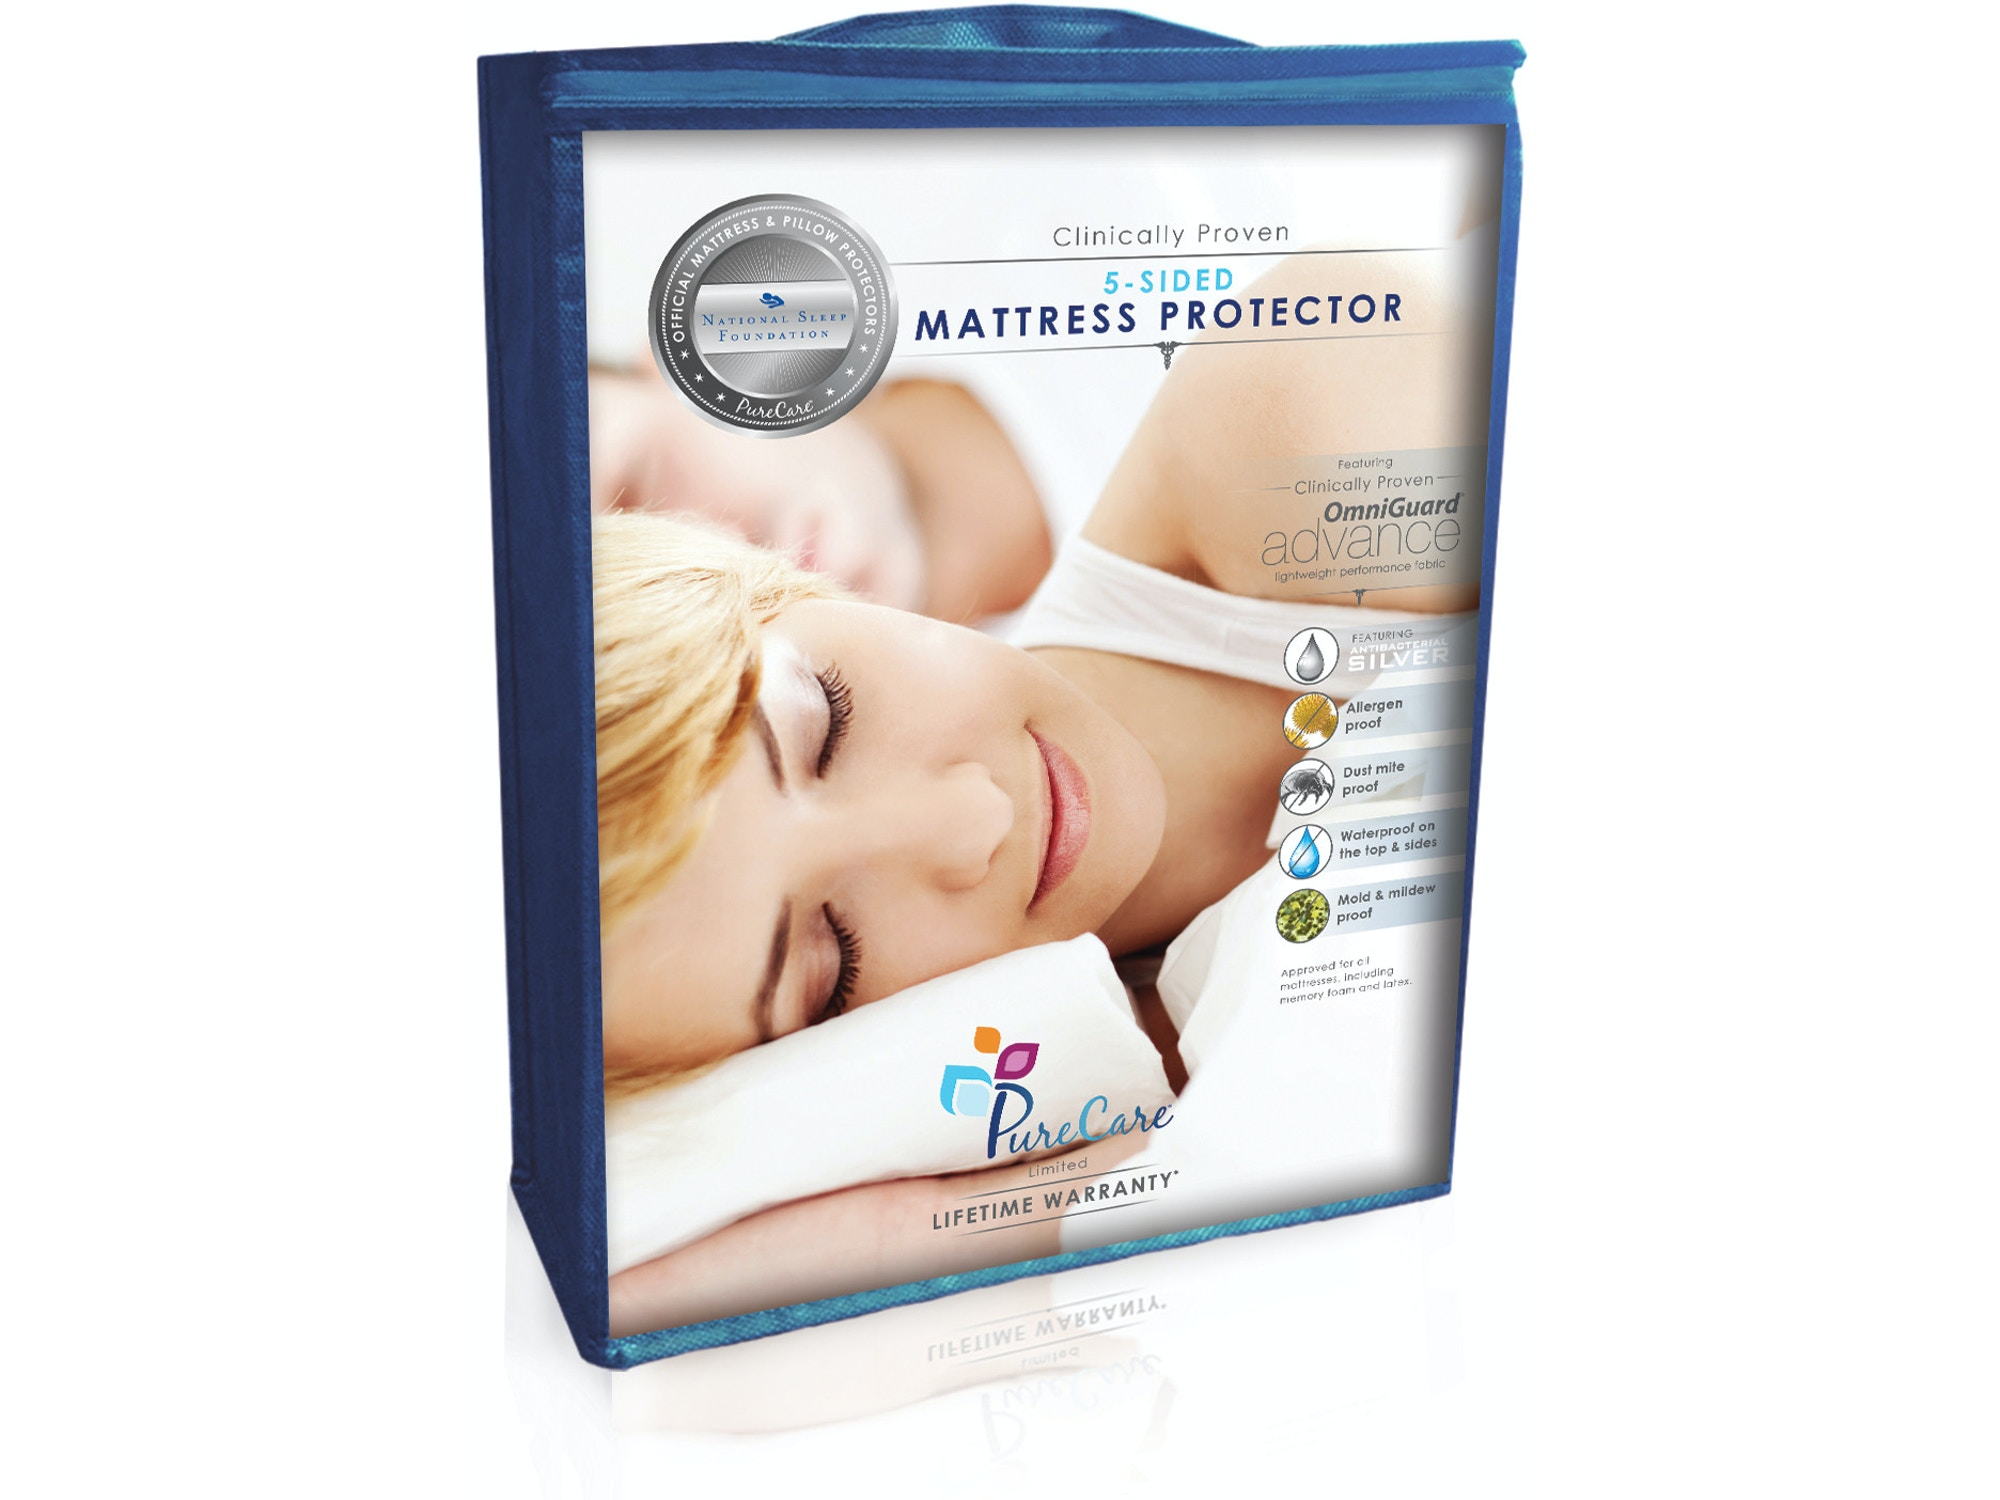 PureCare 5-Sided Mattress Protector - Full XL 028883